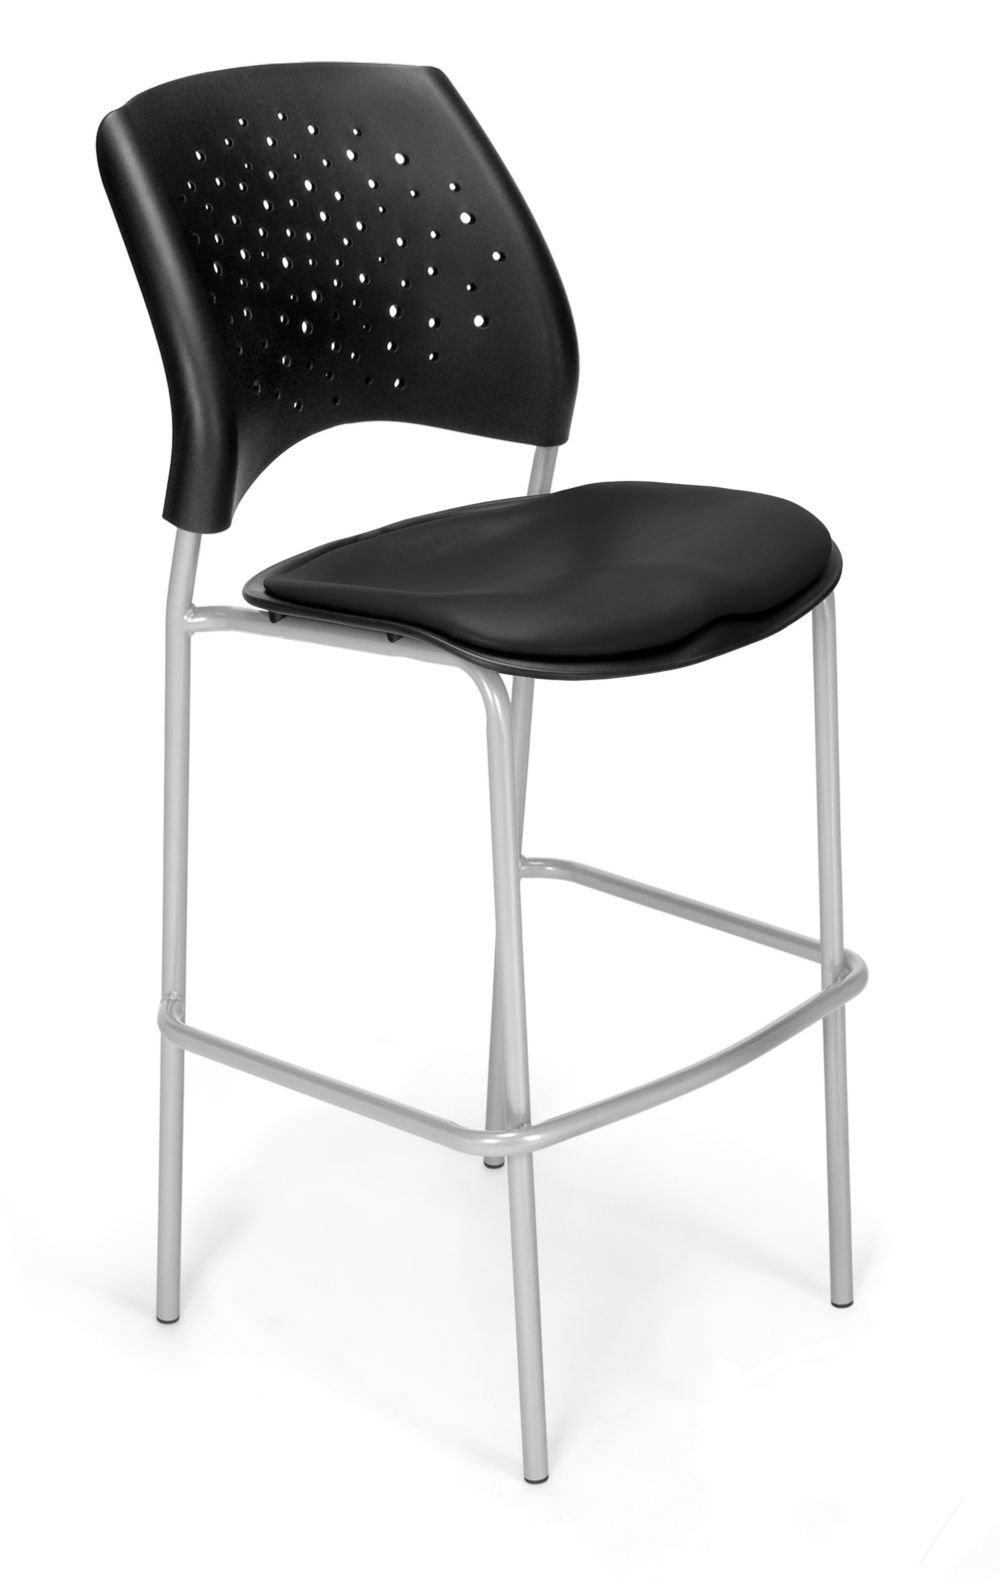 Set of 2 Cafe Height Vinyl Silver Chair Black Vinyl/Silver Frame Dimensions: 21.5''W x 23''D x 45.75''H Weight: 103 lbs